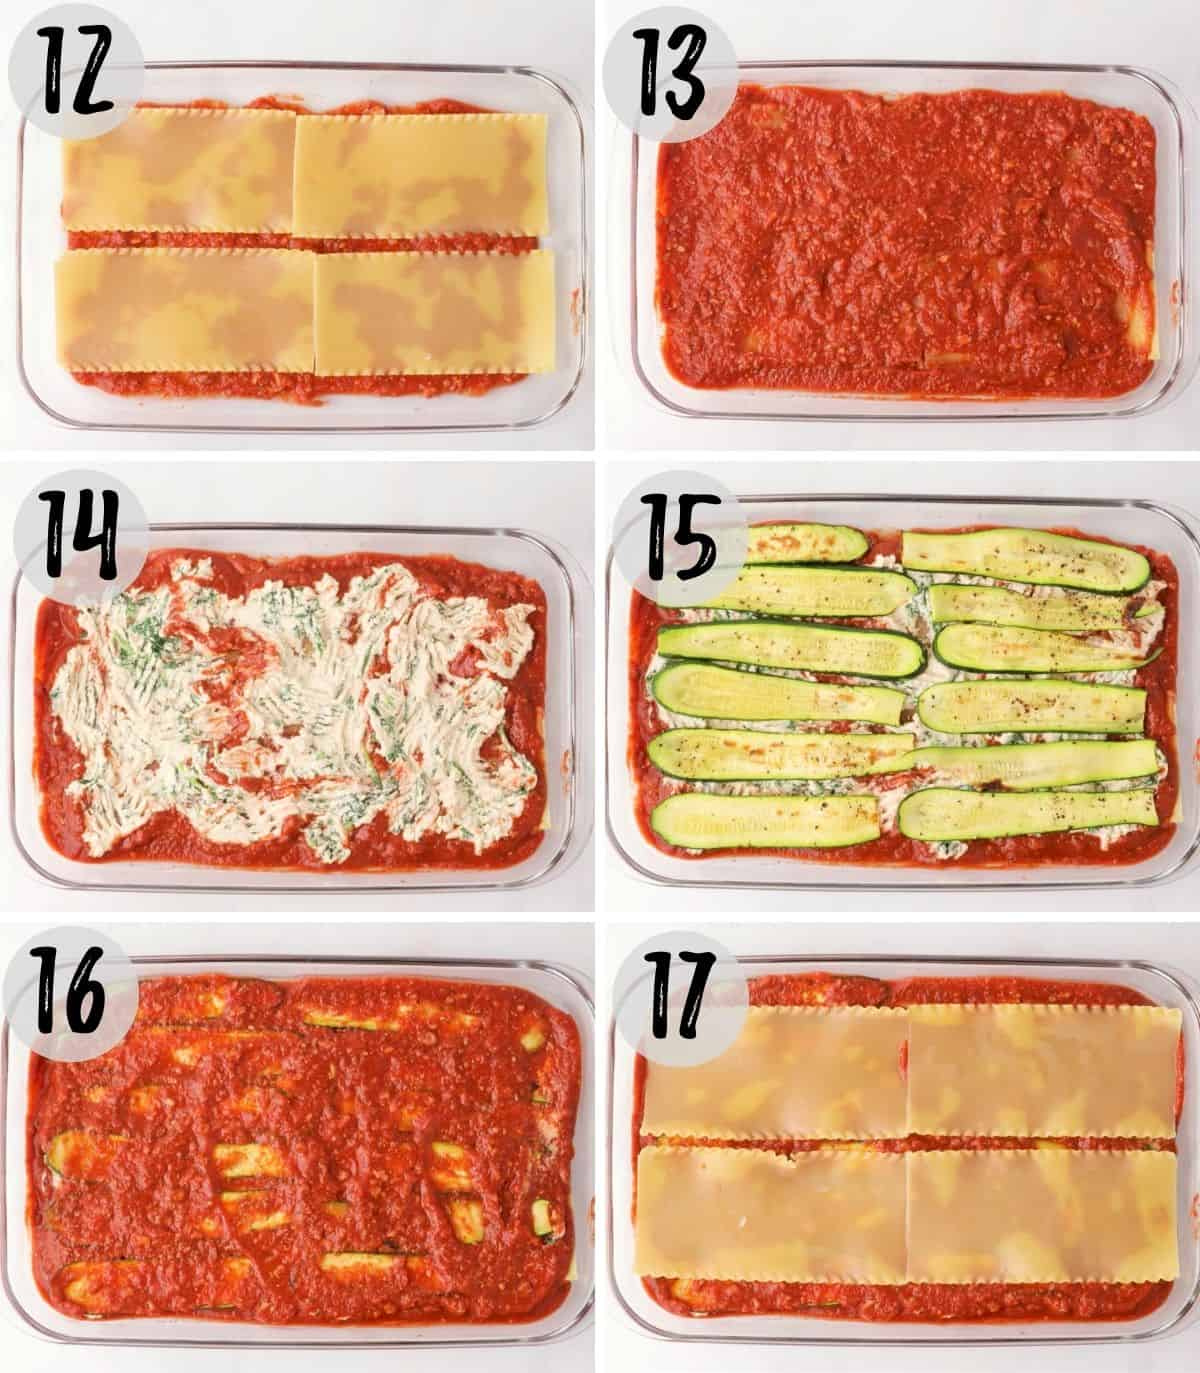 Collage of images showing layers of lasagna being added into tray.